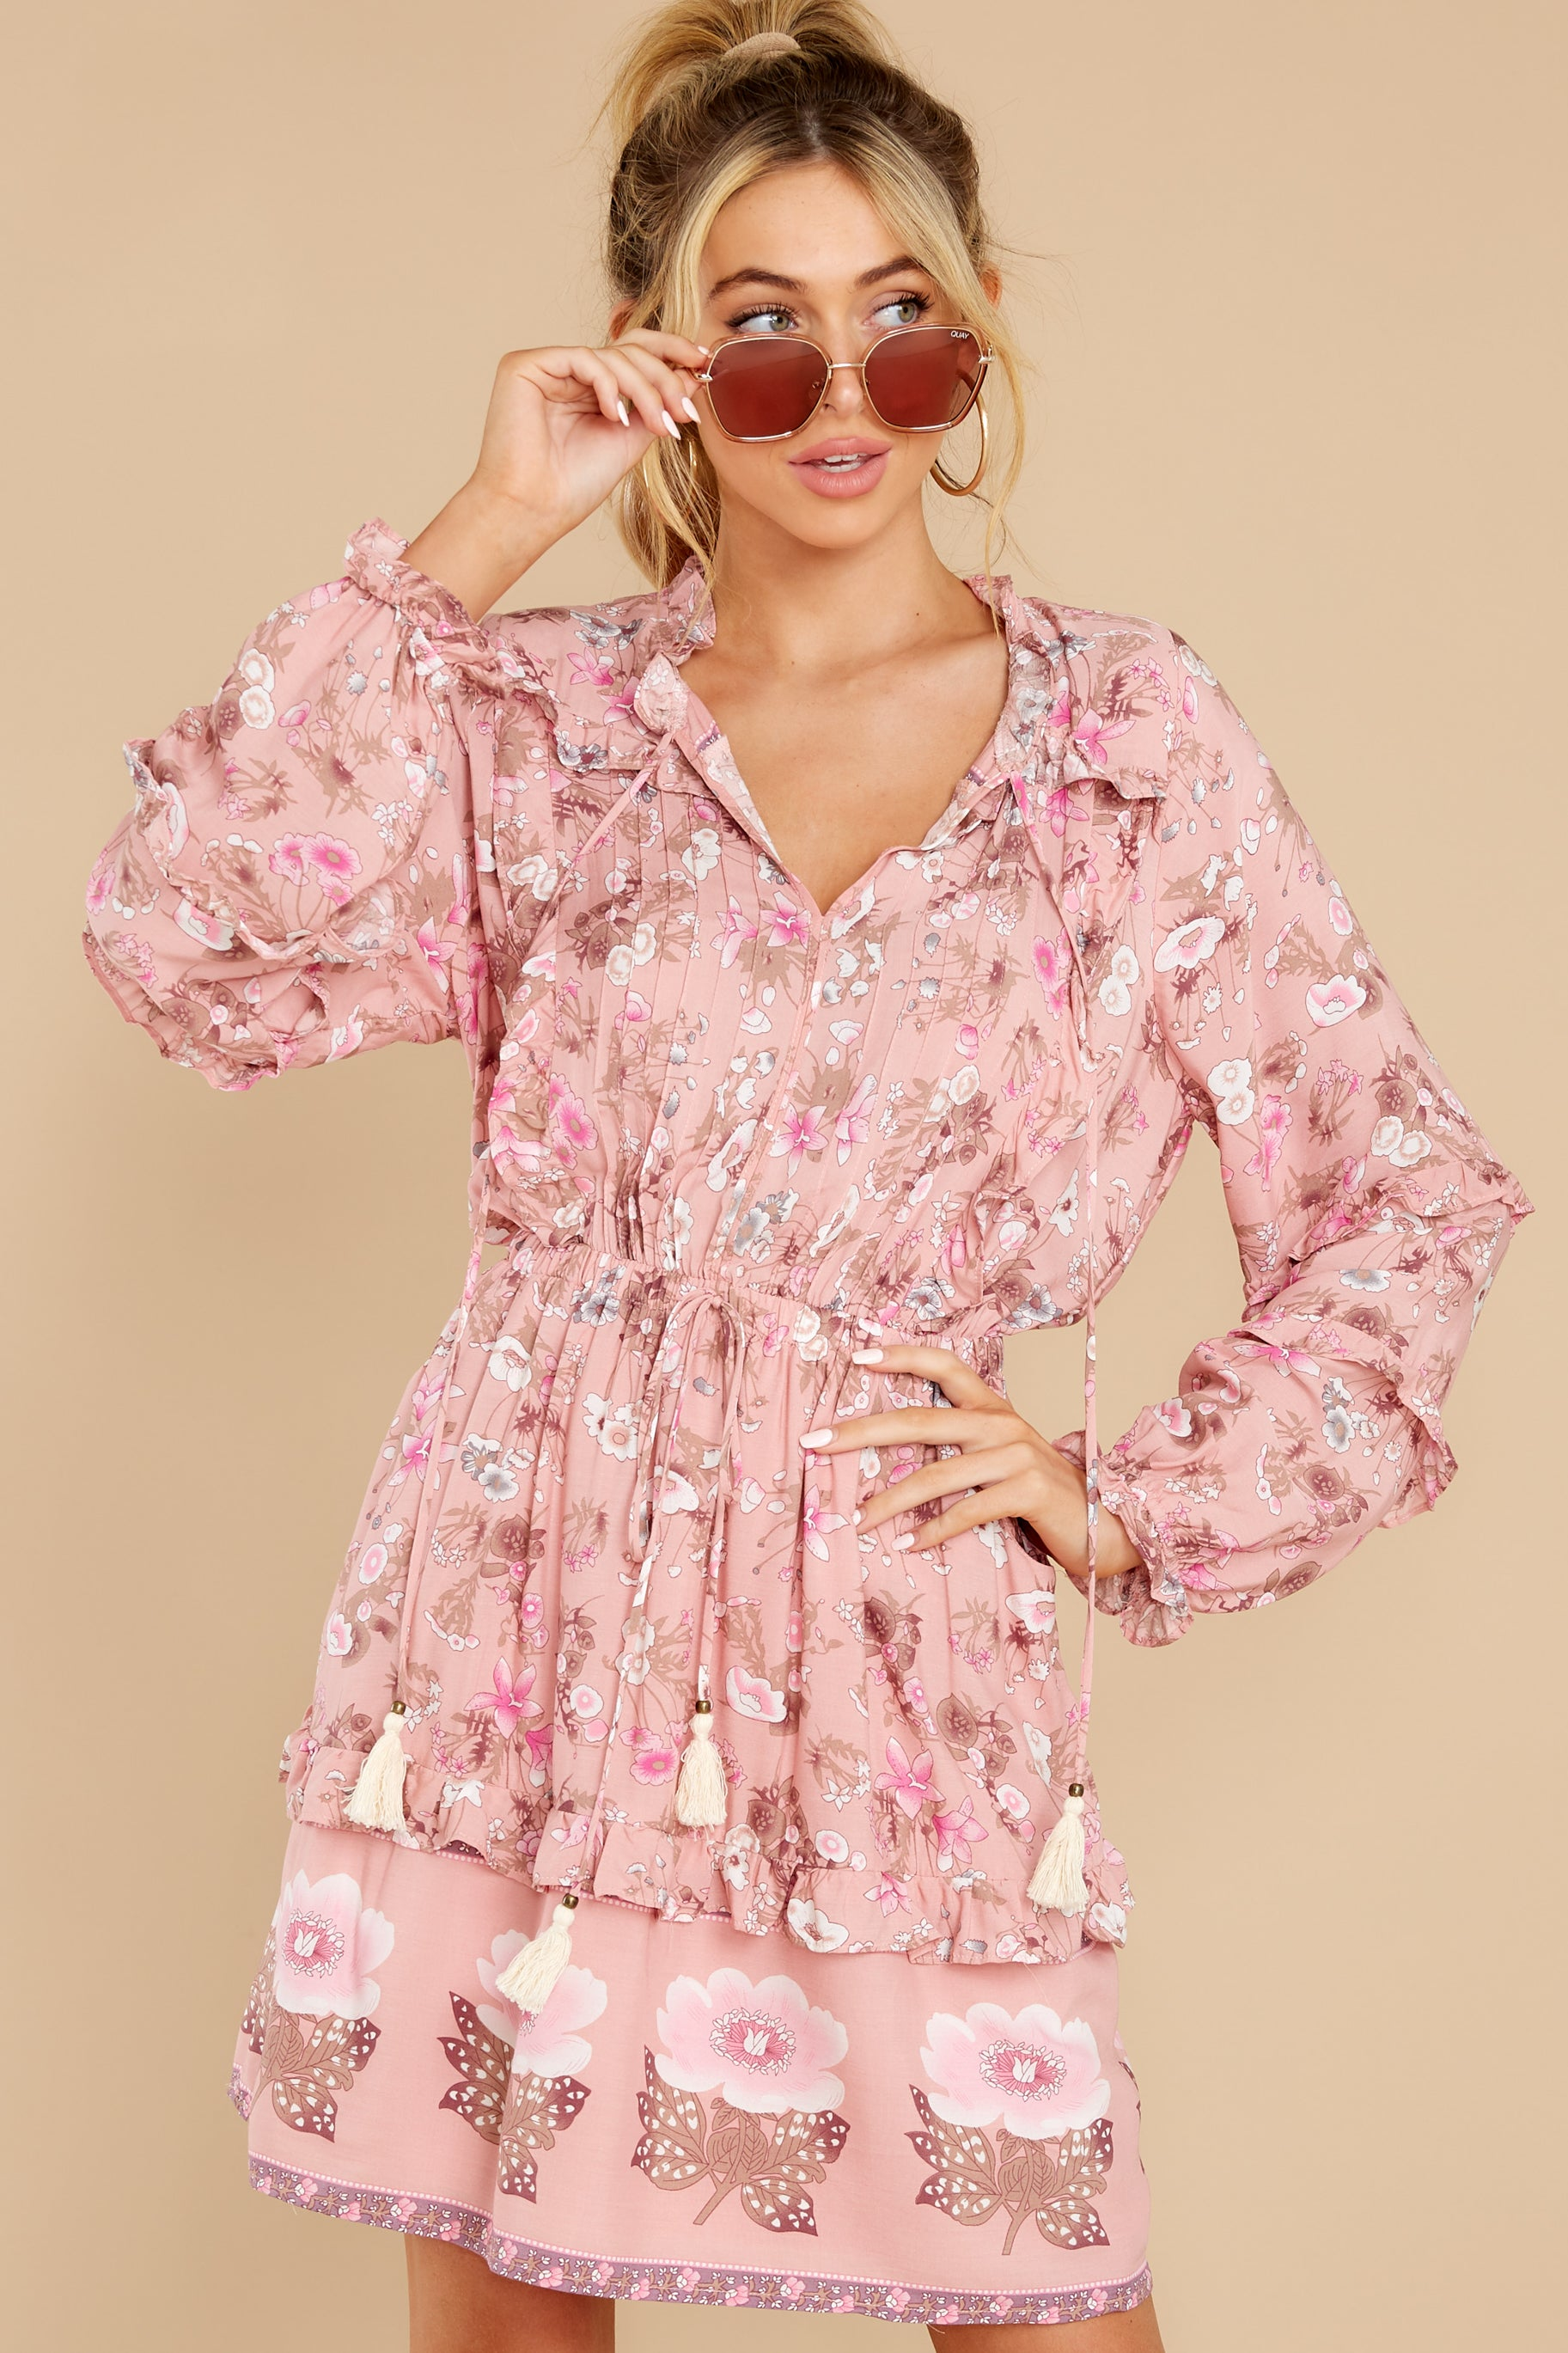 7 Ventura Nights Mauve Pink Floral Print Dress at reddress.com